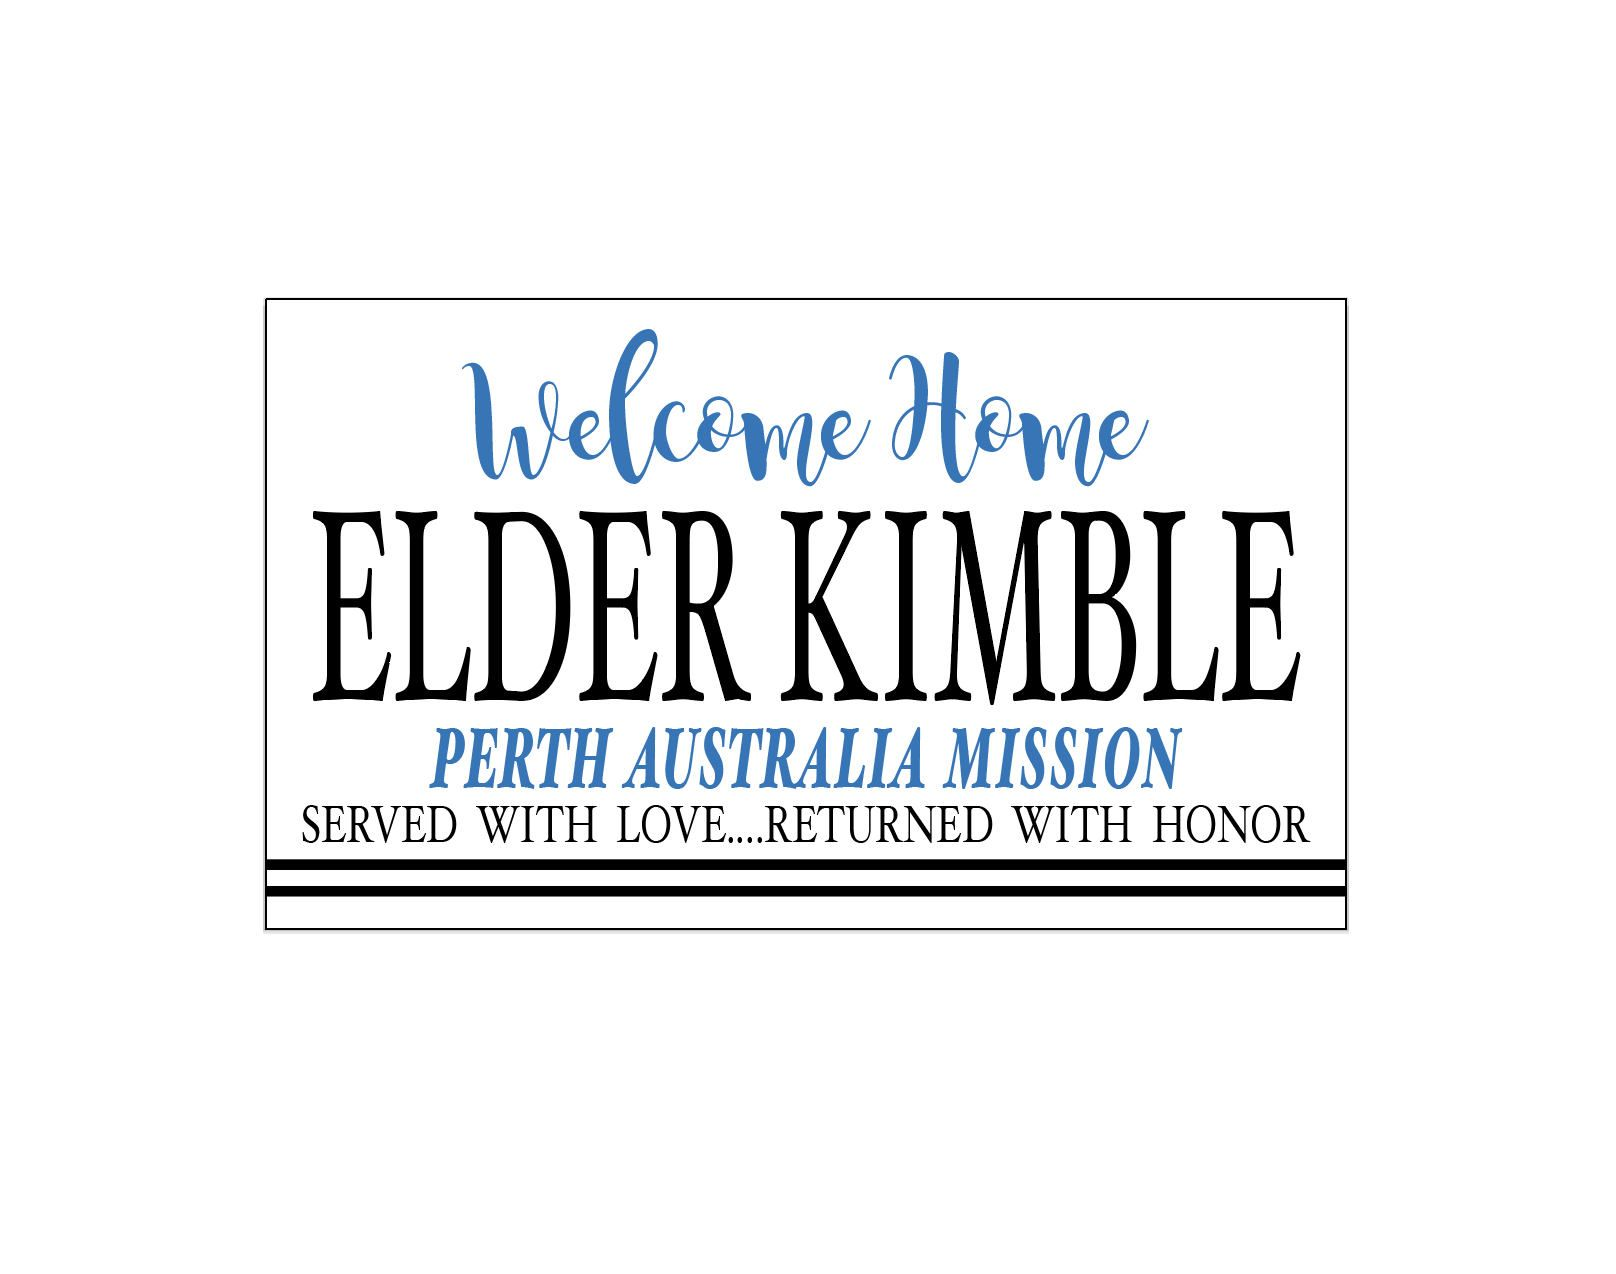 Missionary Welcome Home Banner, Served with love returned